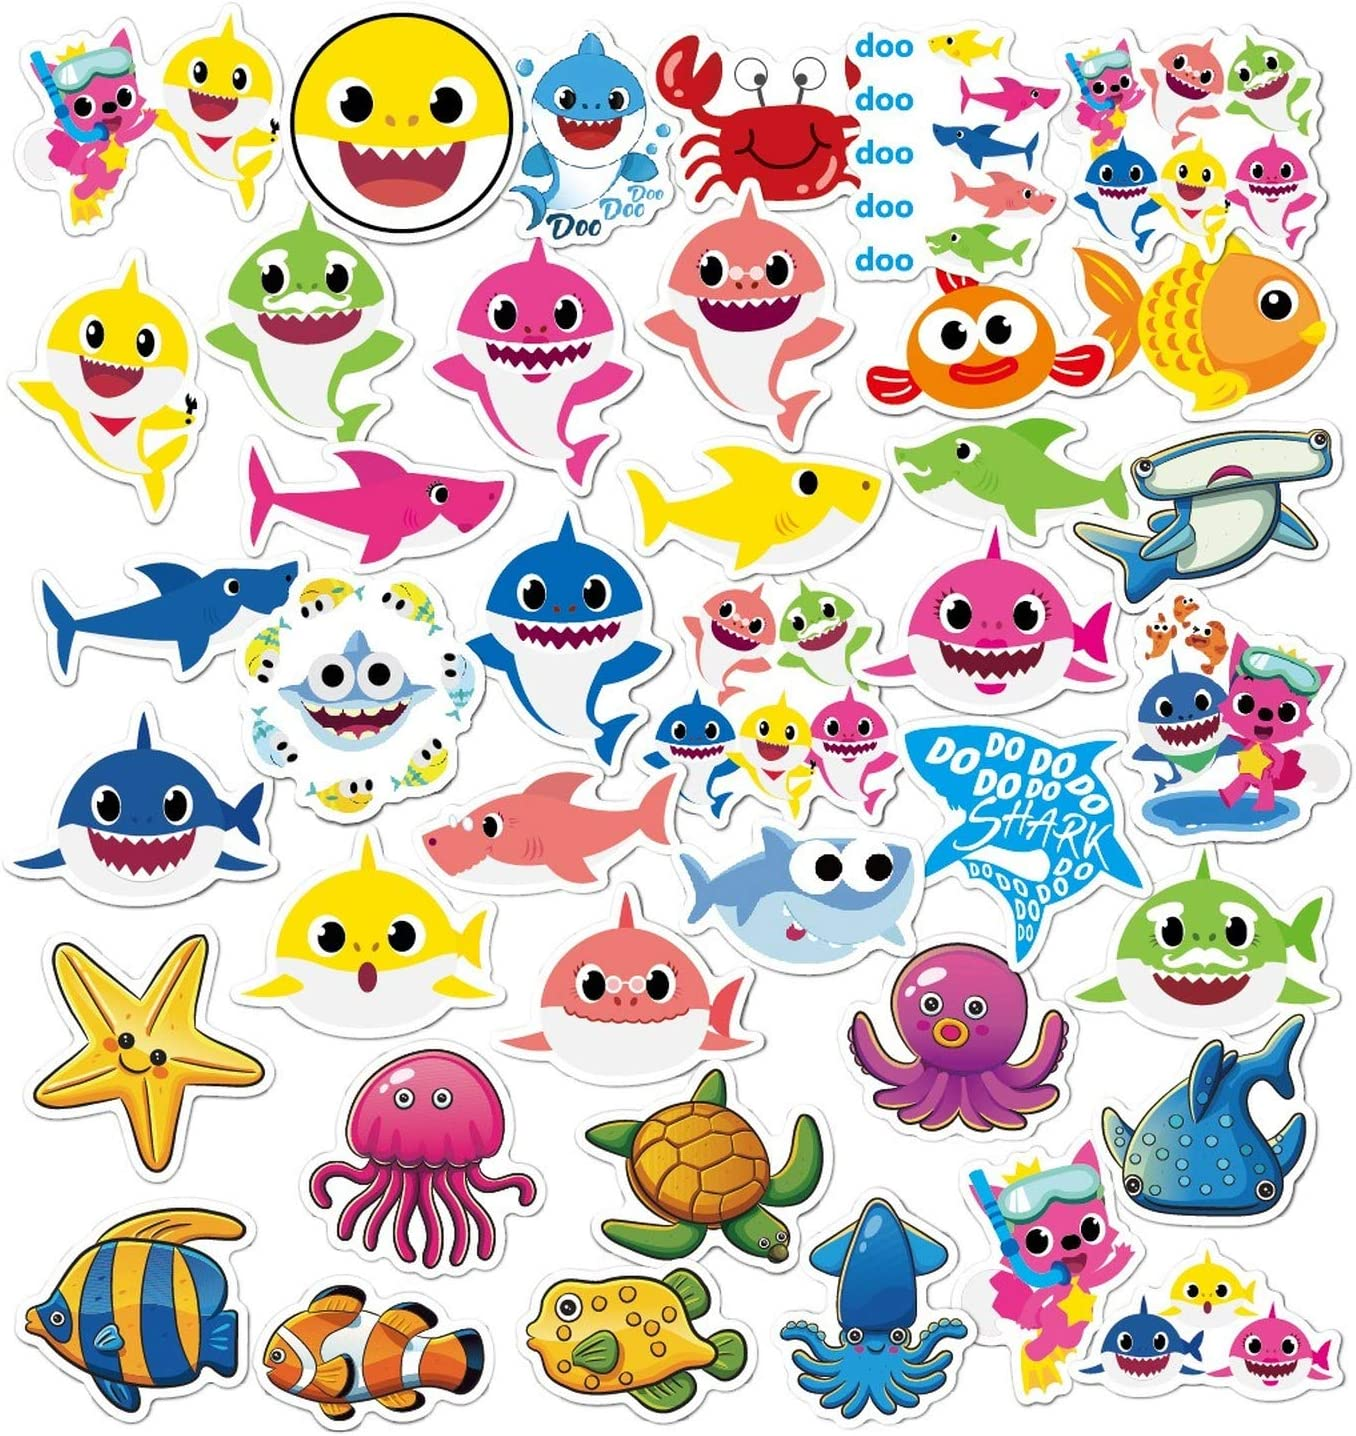 Cute Baby Shark Stickers 40pcs Small Baby Shark Waterproof Vinyl Stickers Kids Toddler Baby Shark Themed Party Favor for Hydro Flask Water Bottles Laptop Bicycle Car Skateboard Luggage Graffiti Decals